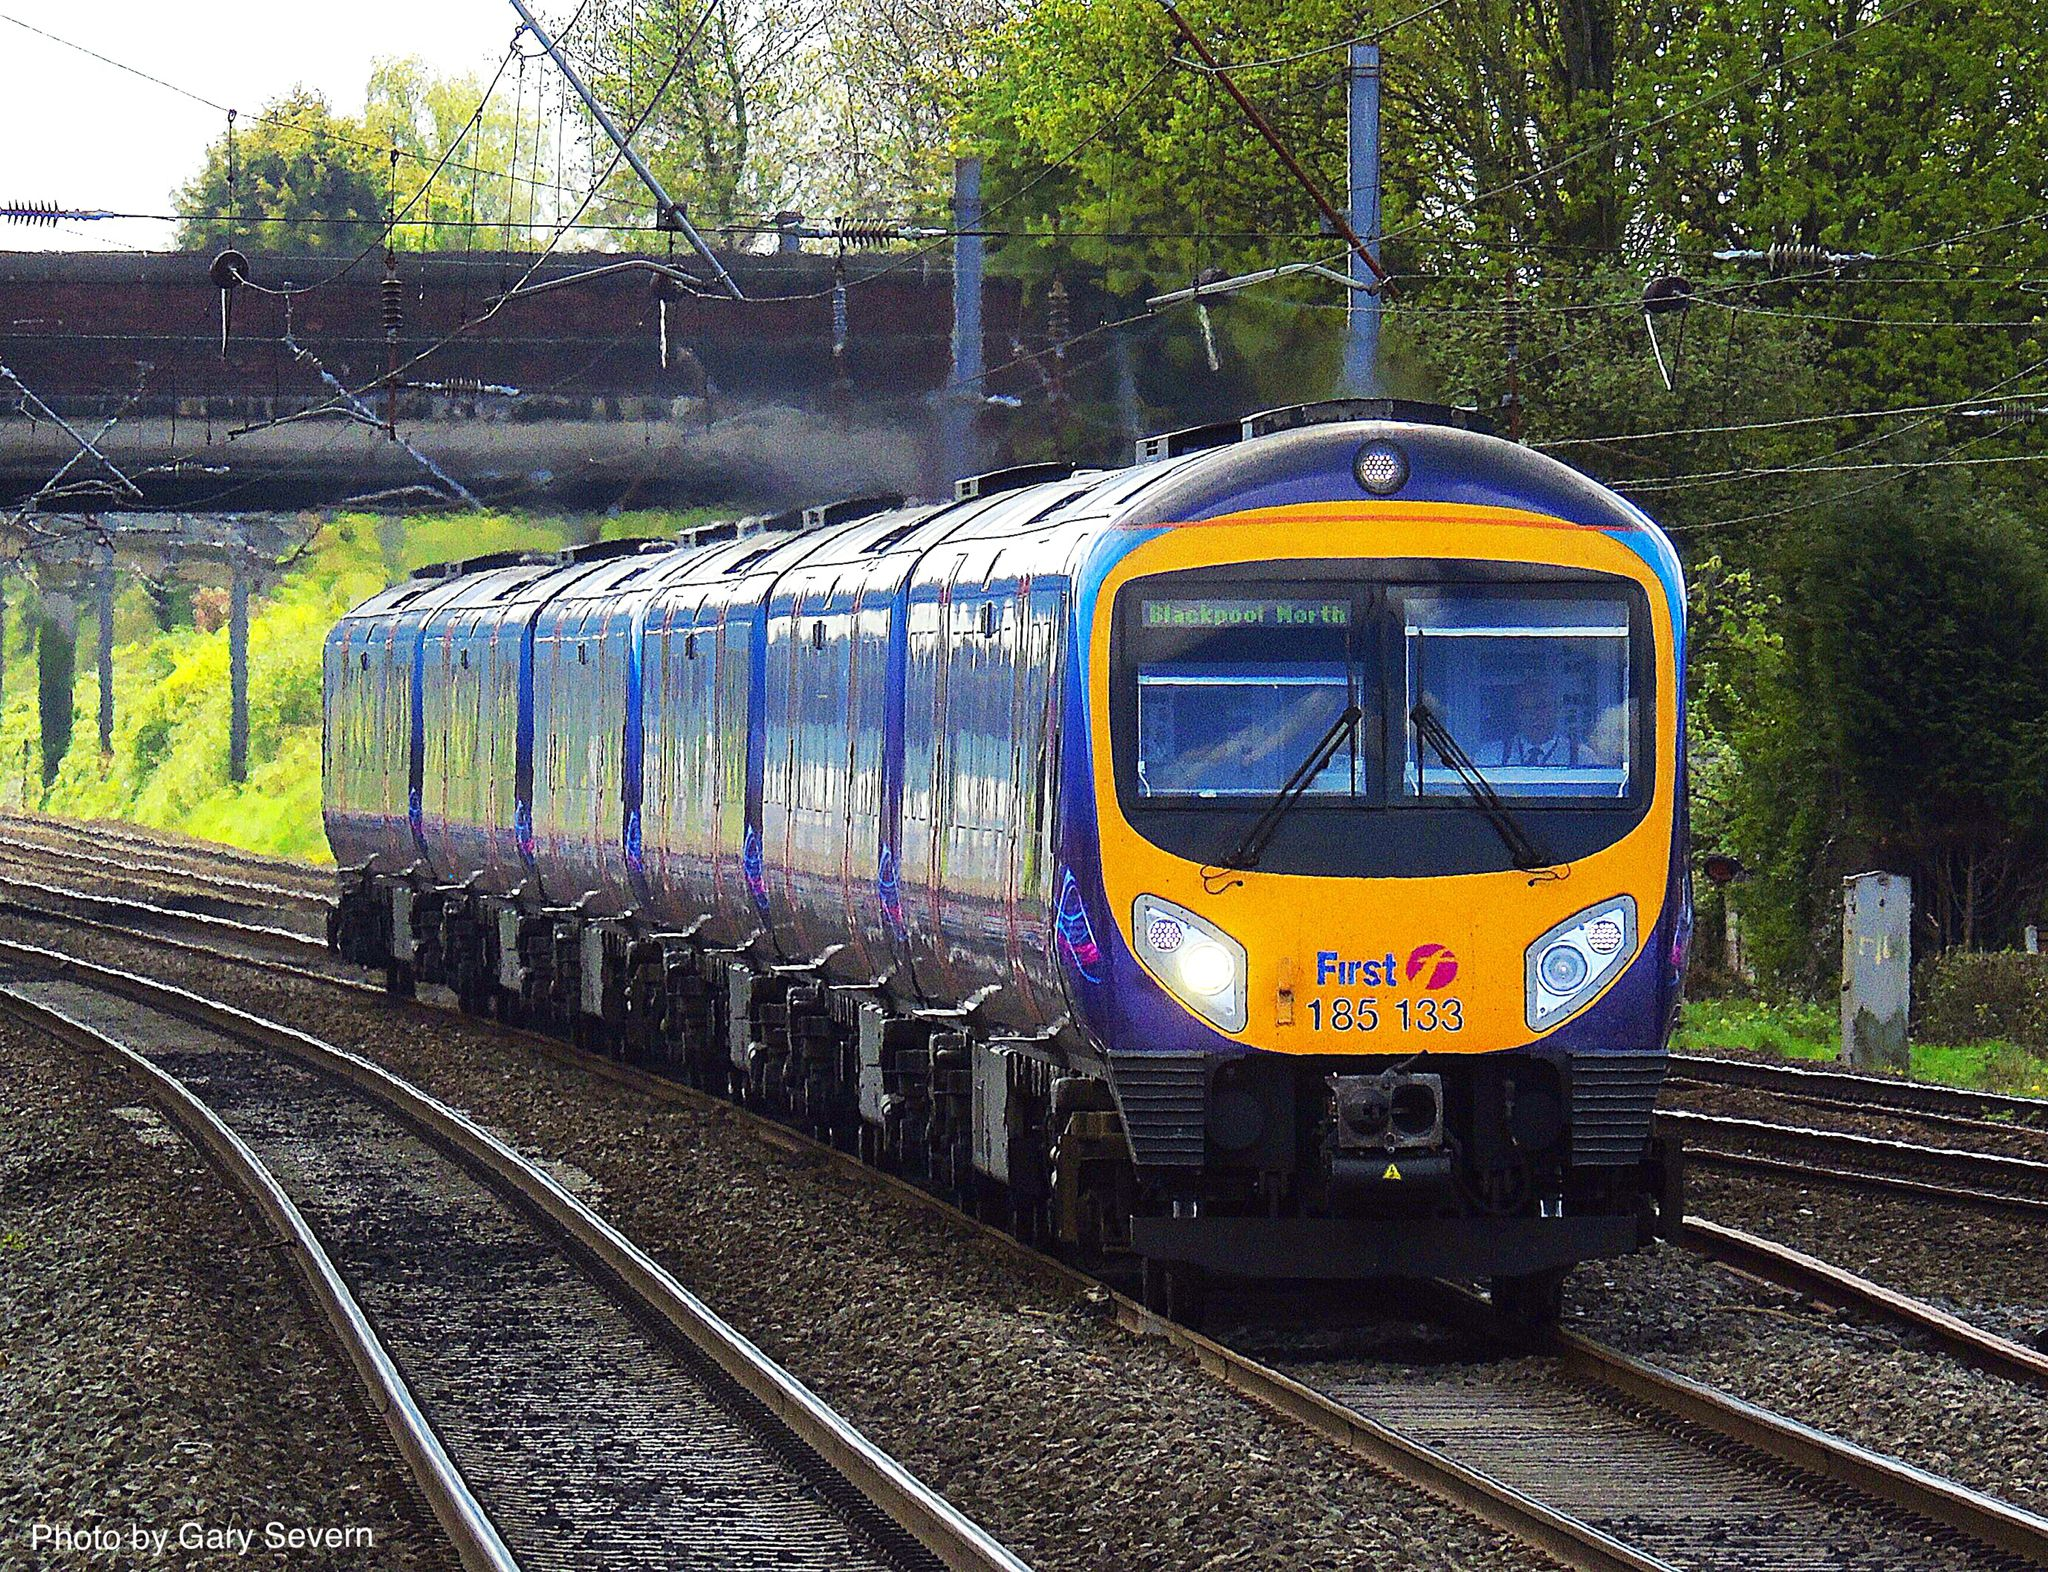 f03539bafae4980f64ca47e59a26eafc - How To Get From Manchester Train Station To Airport